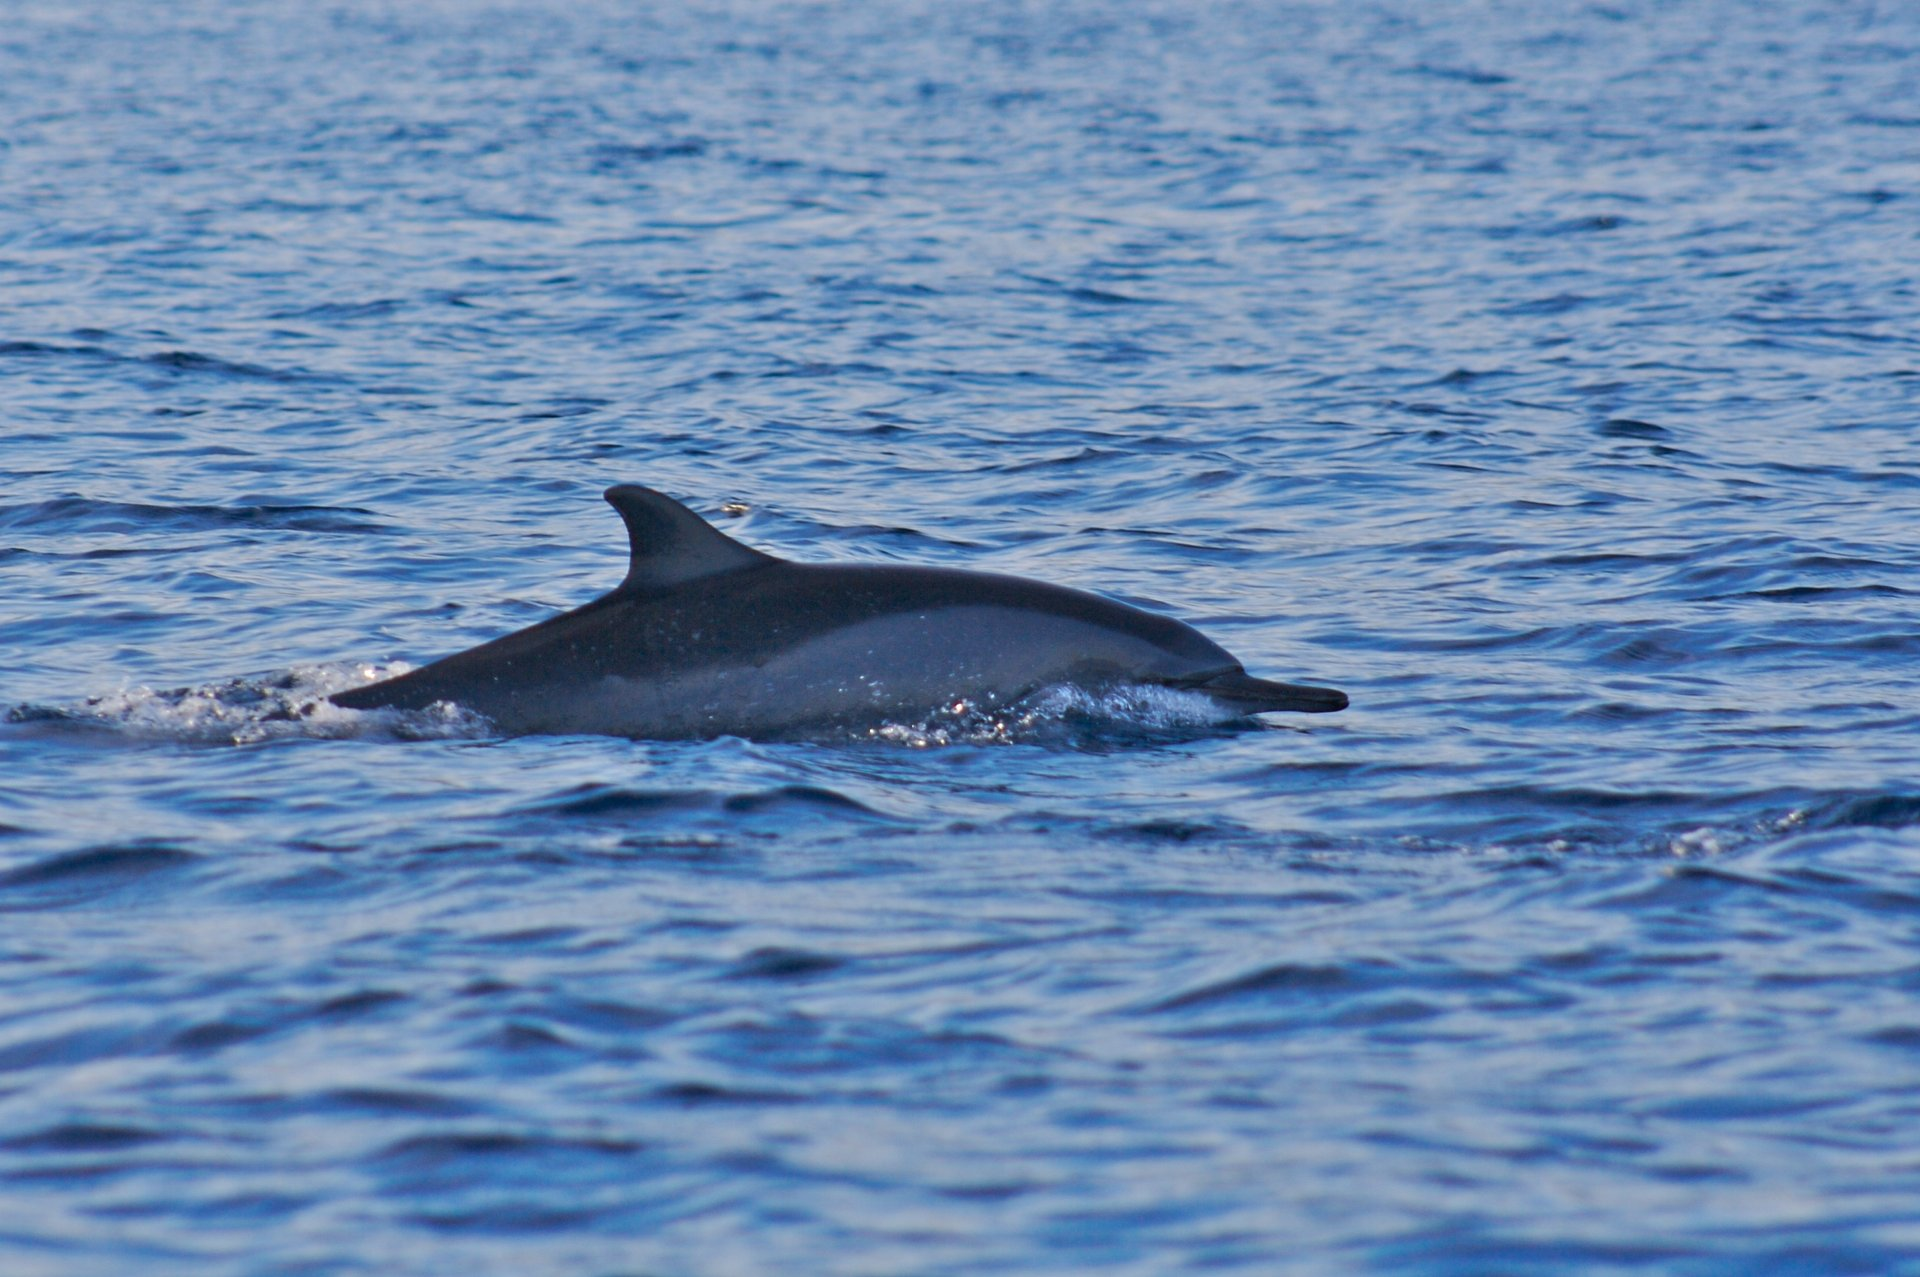 Lovina Dolphin Watching in Bali - Best Season 2020